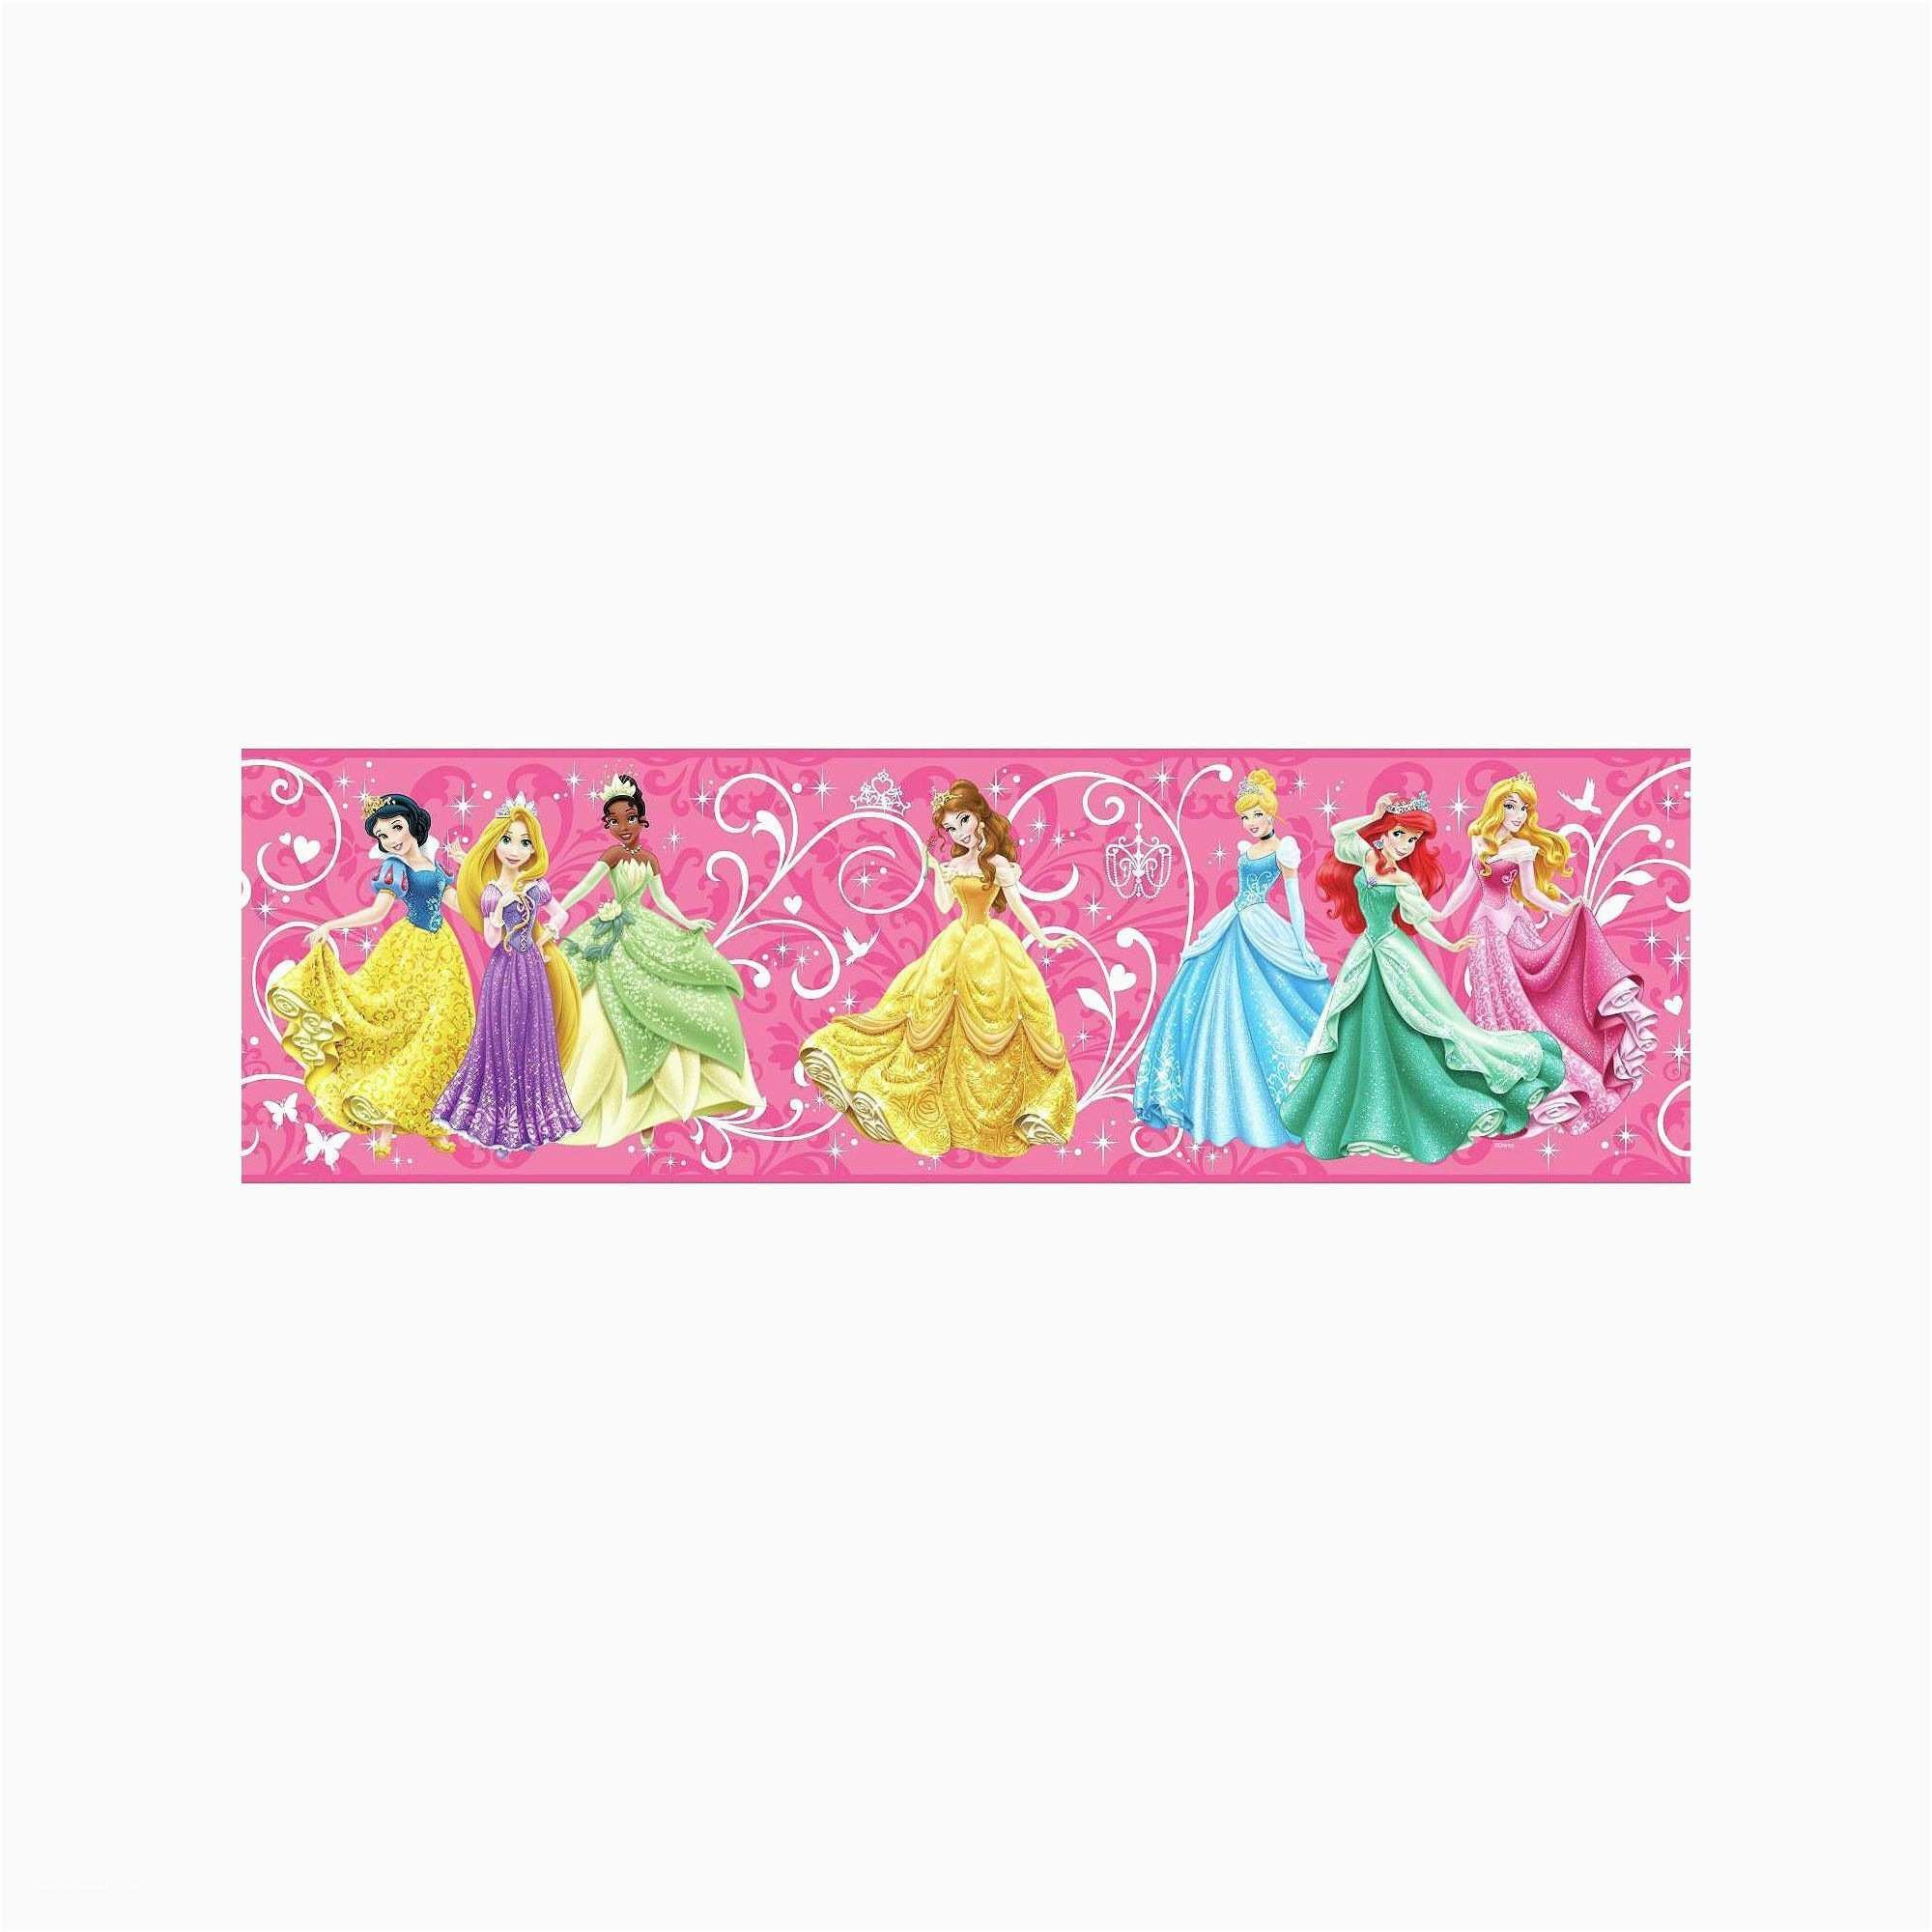 2000x2000 Cabin Wallpaper Border Elegant Disney Princess True Princess Wall Border  Light Pink Of Cabin Wallpaper Border